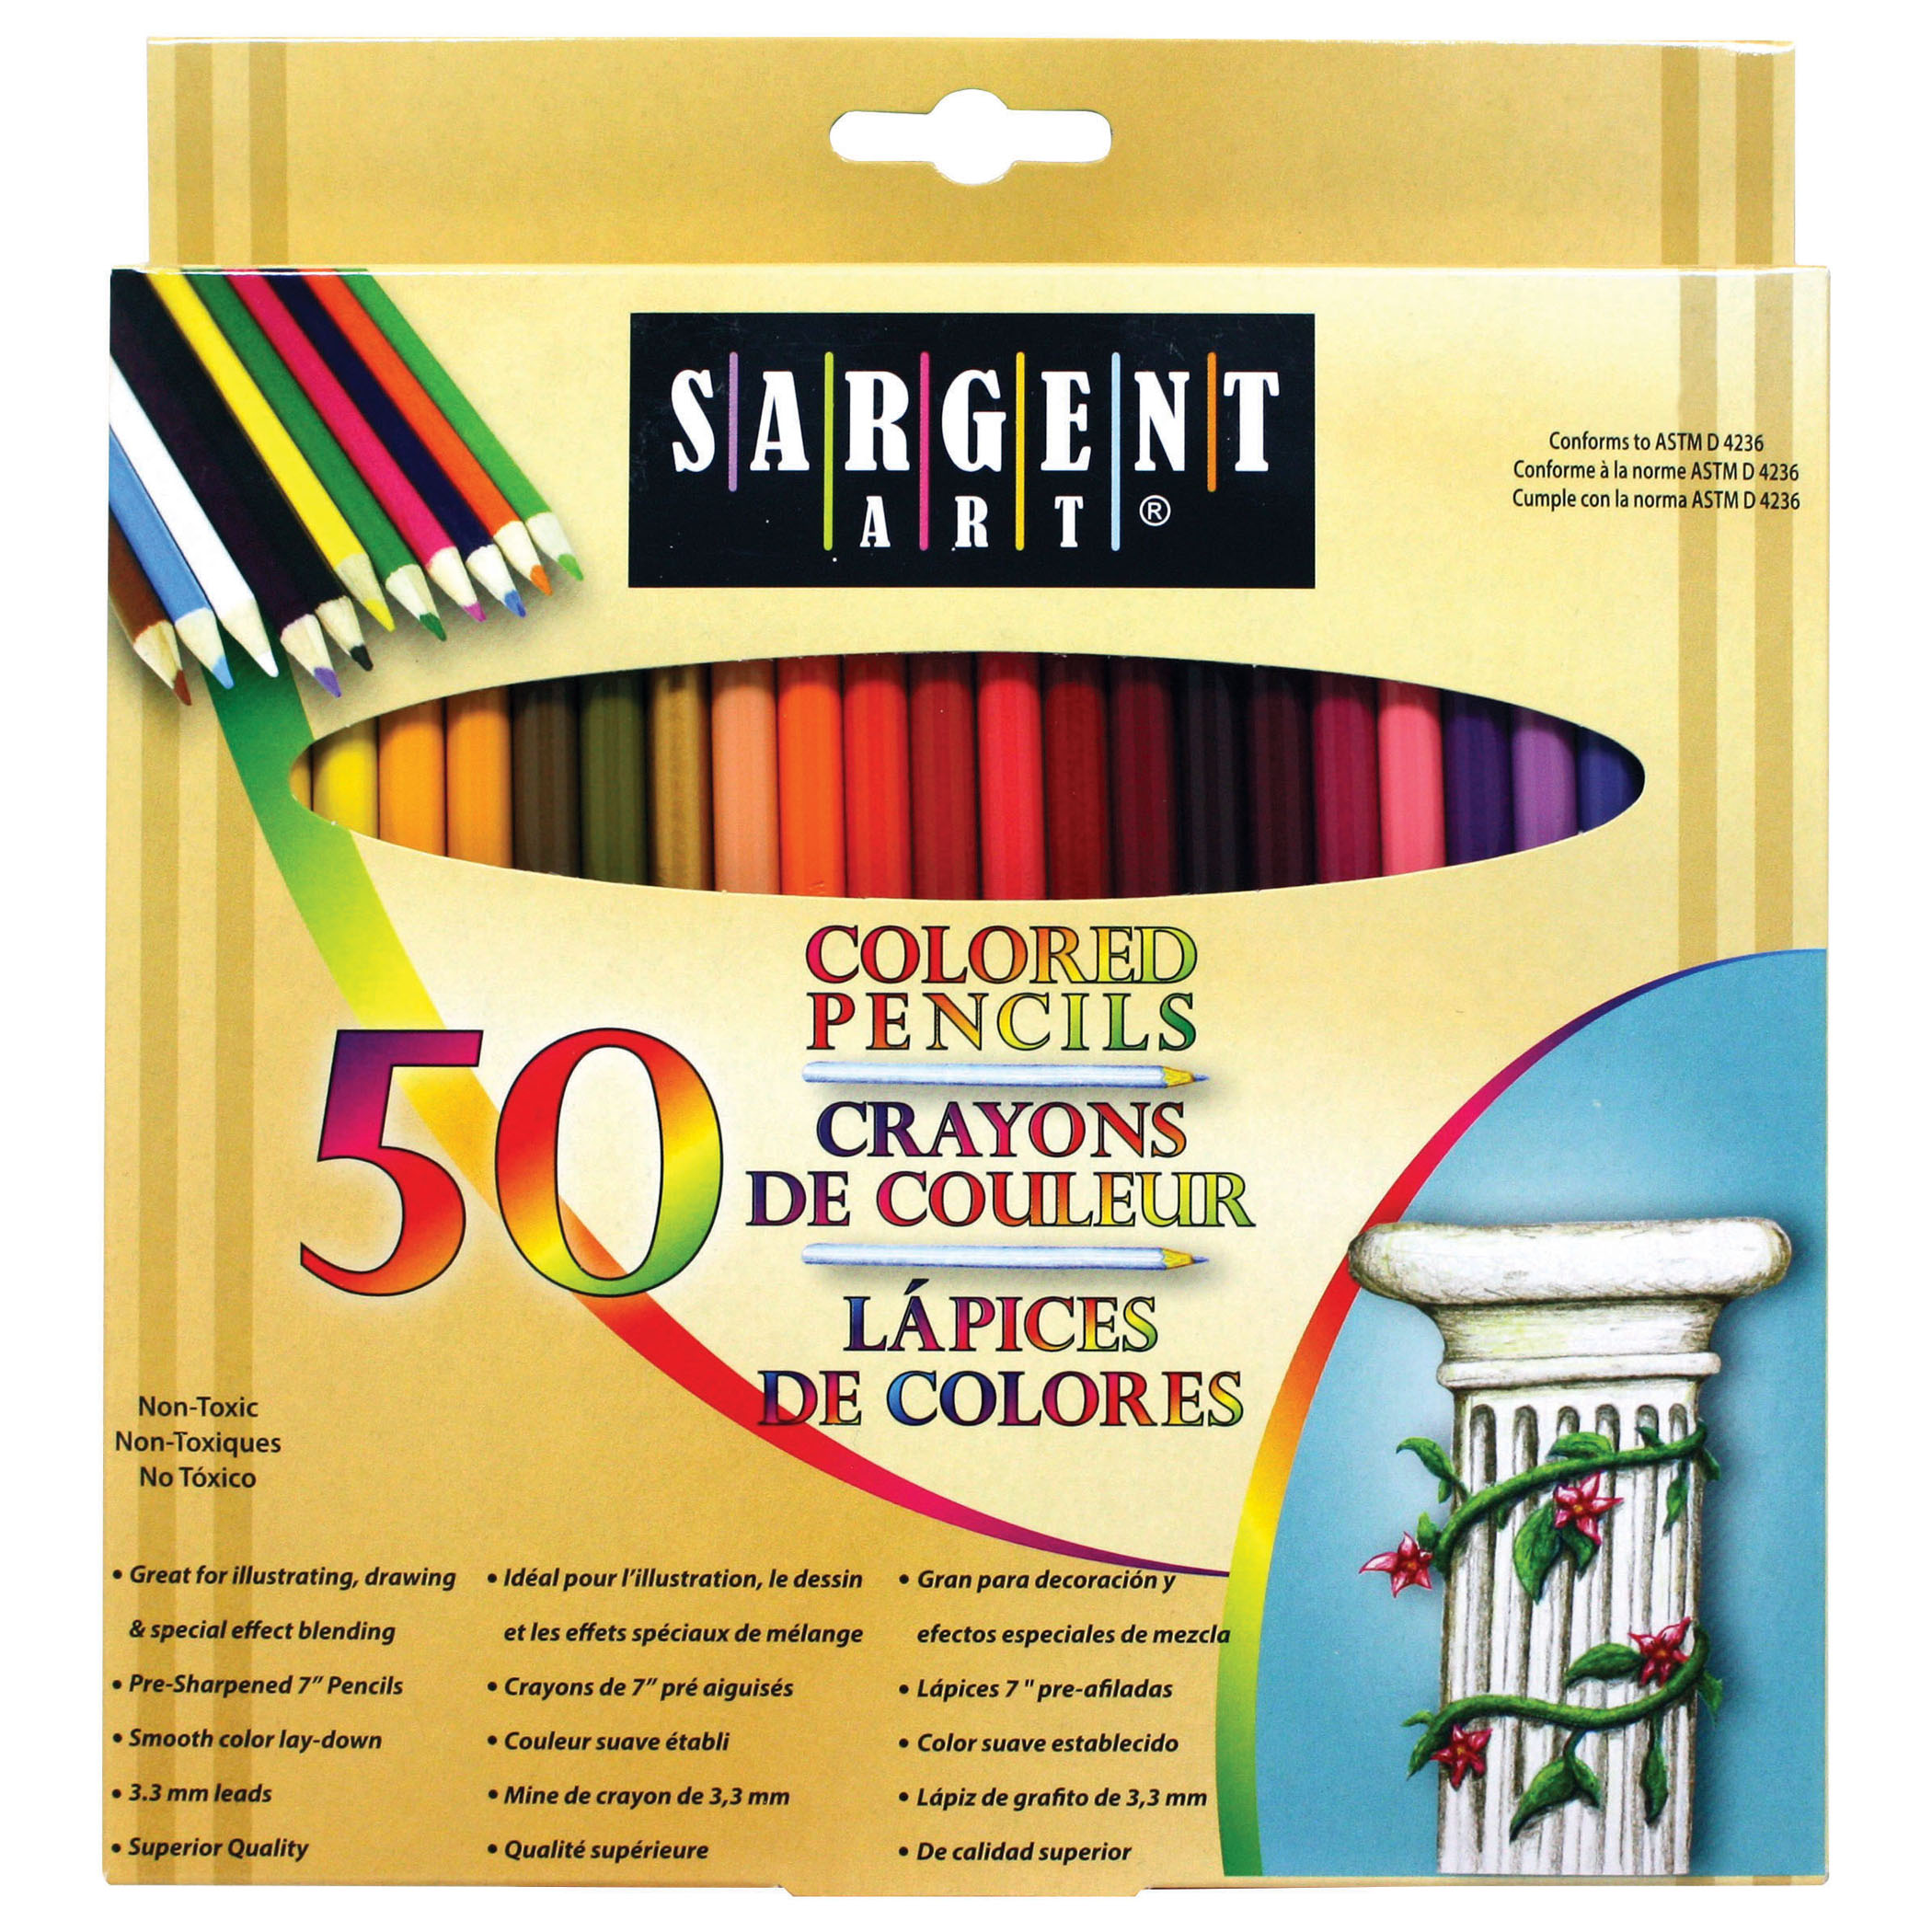 Sargent Art® Colored Pencils, 50 per pack, 3 packs